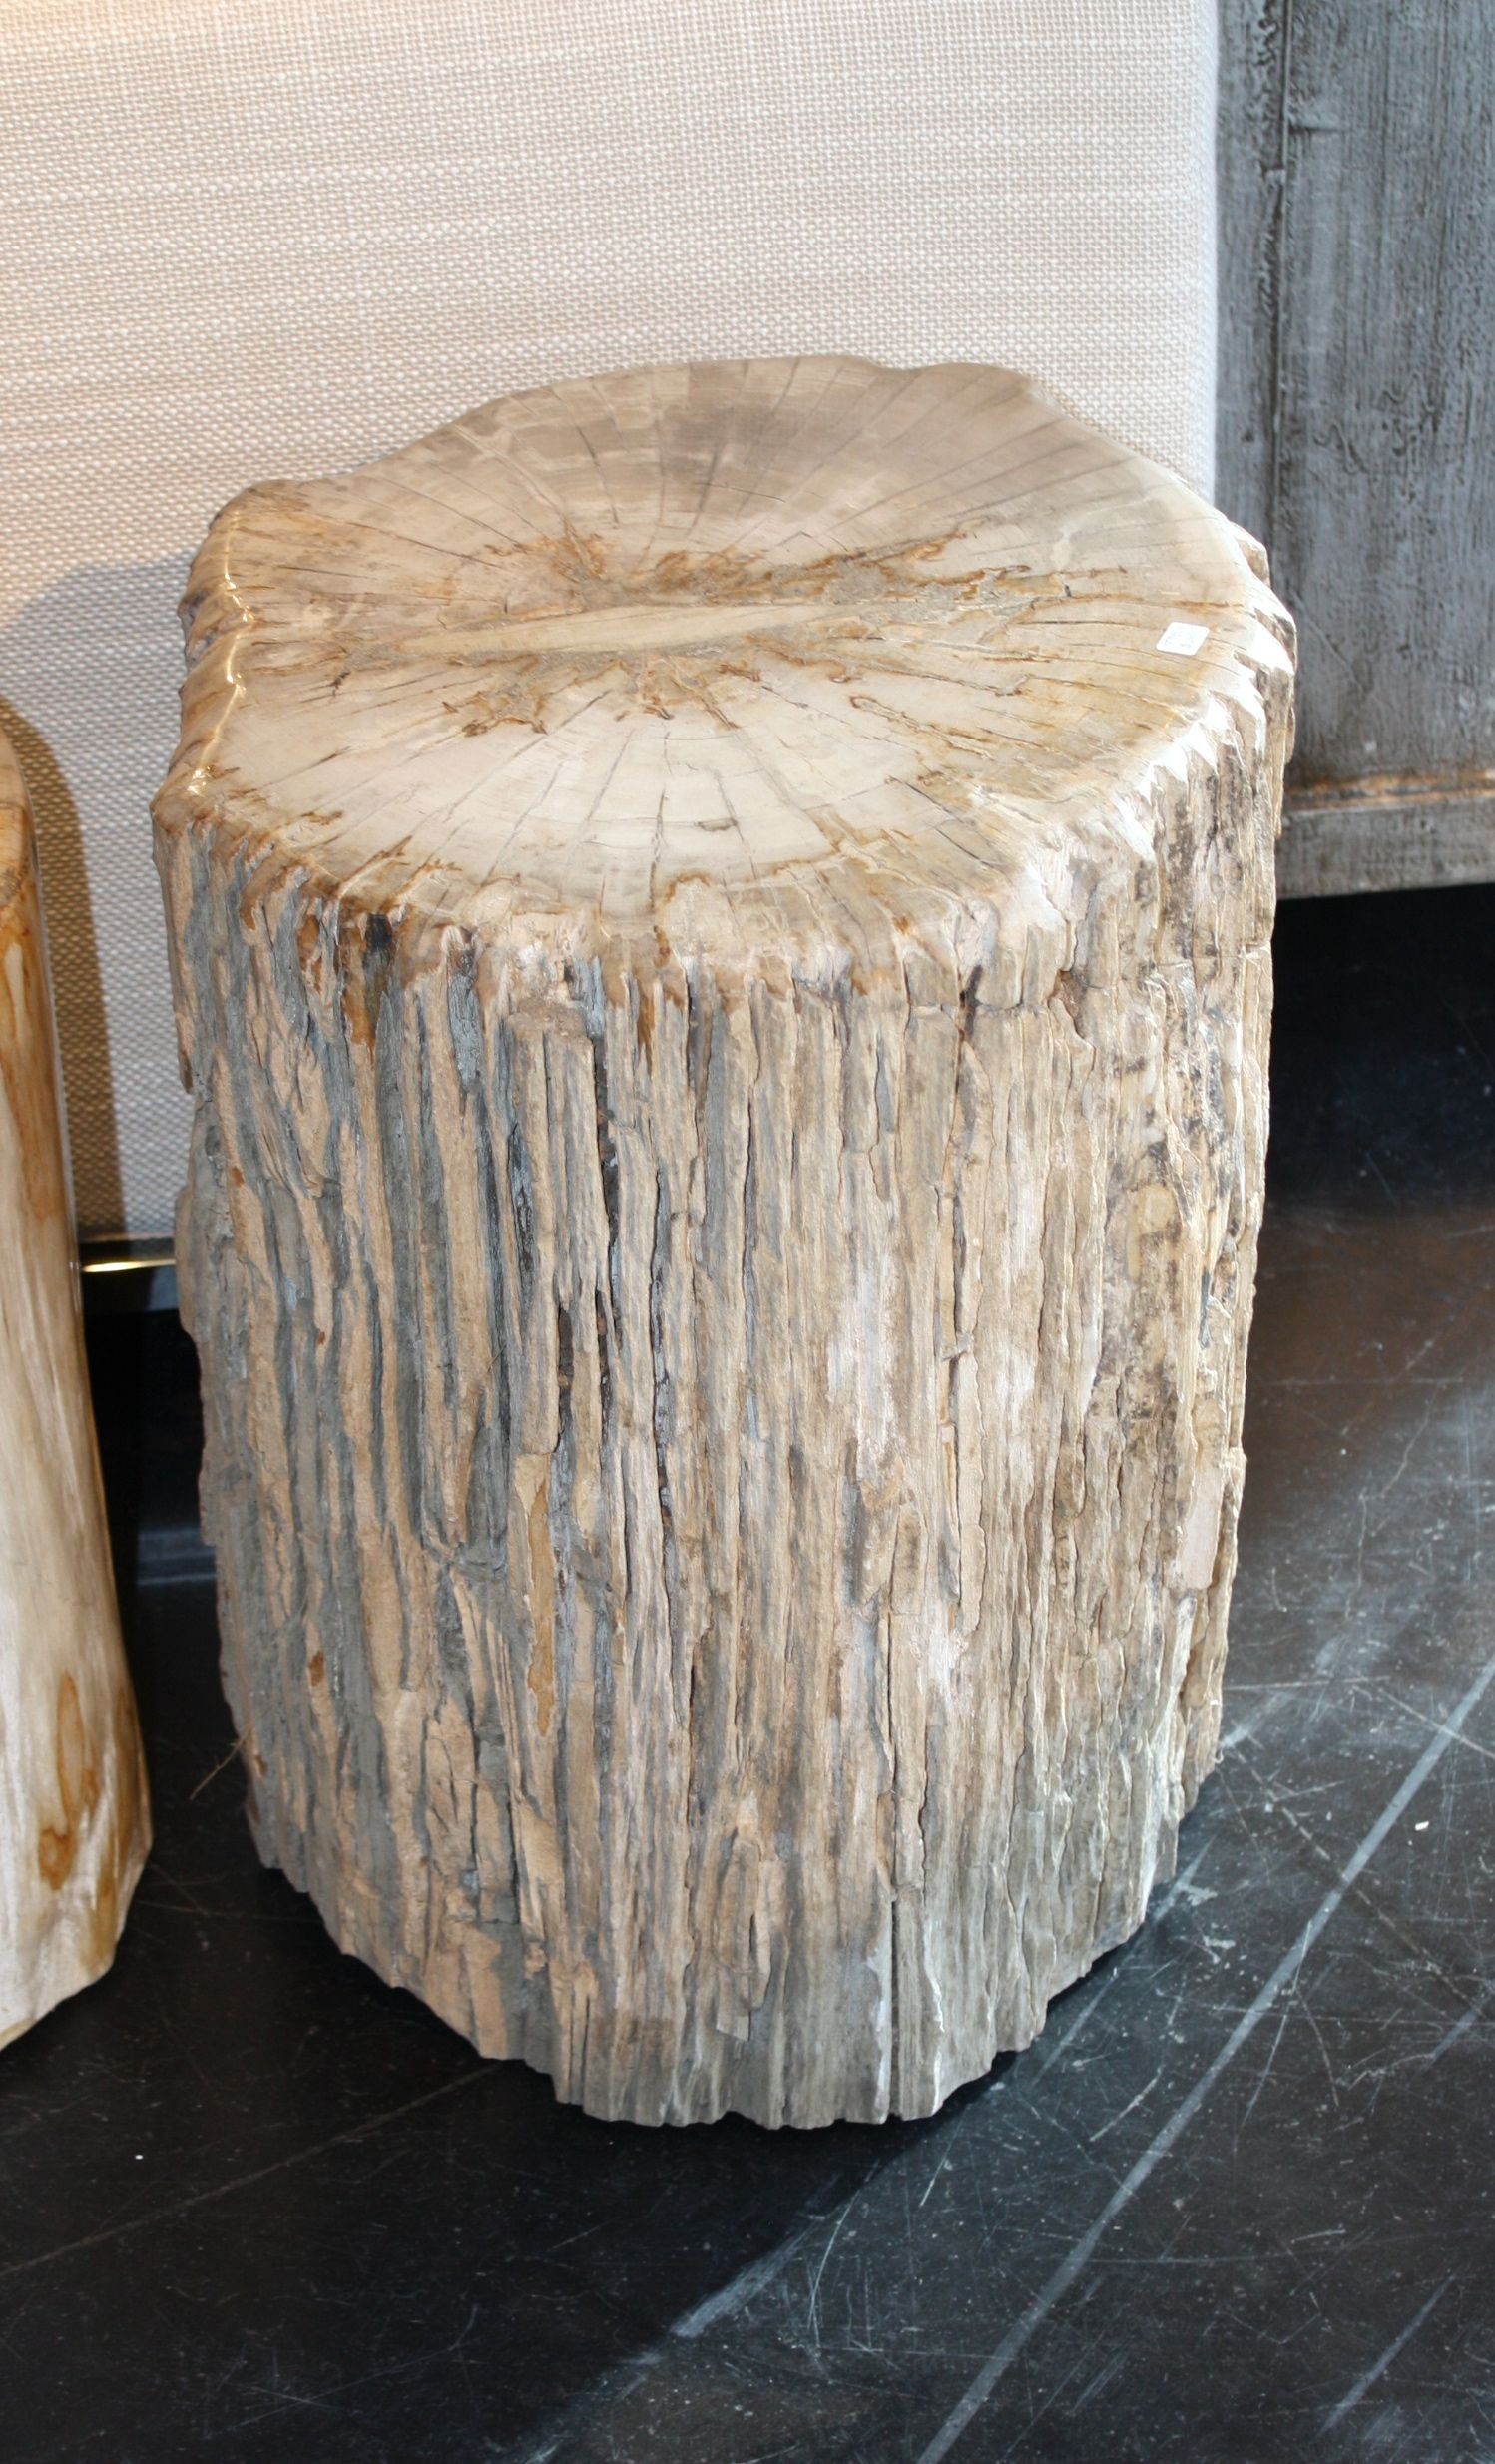 Pleasing Blond Petrified Wood Stool With Natural Bark Finish Gmtry Best Dining Table And Chair Ideas Images Gmtryco